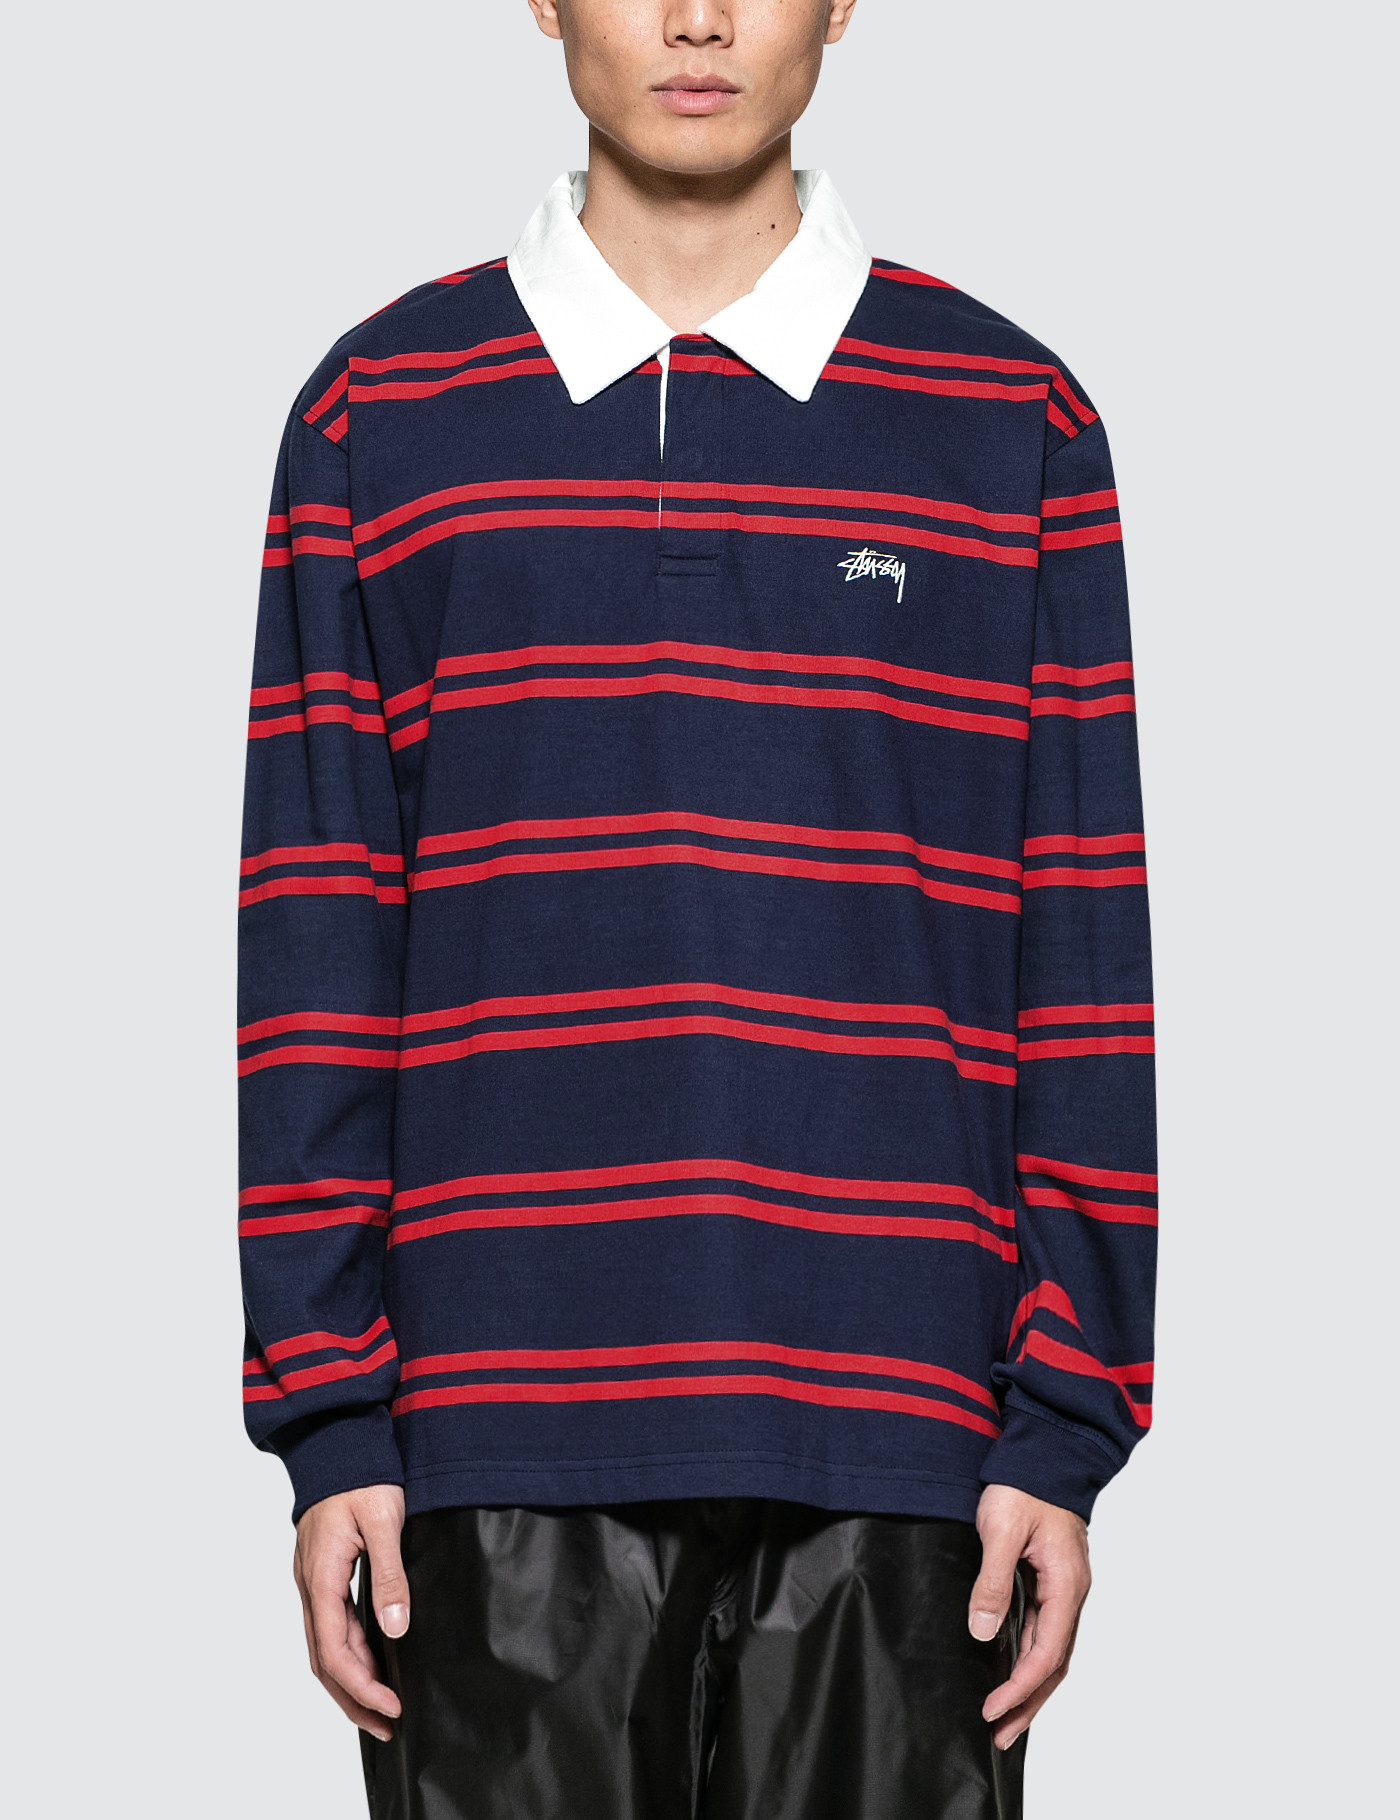 d1ae5e81d37 Buy Original Stussy Desmond Stripe L/S Rugby Jersey at Indonesia ...